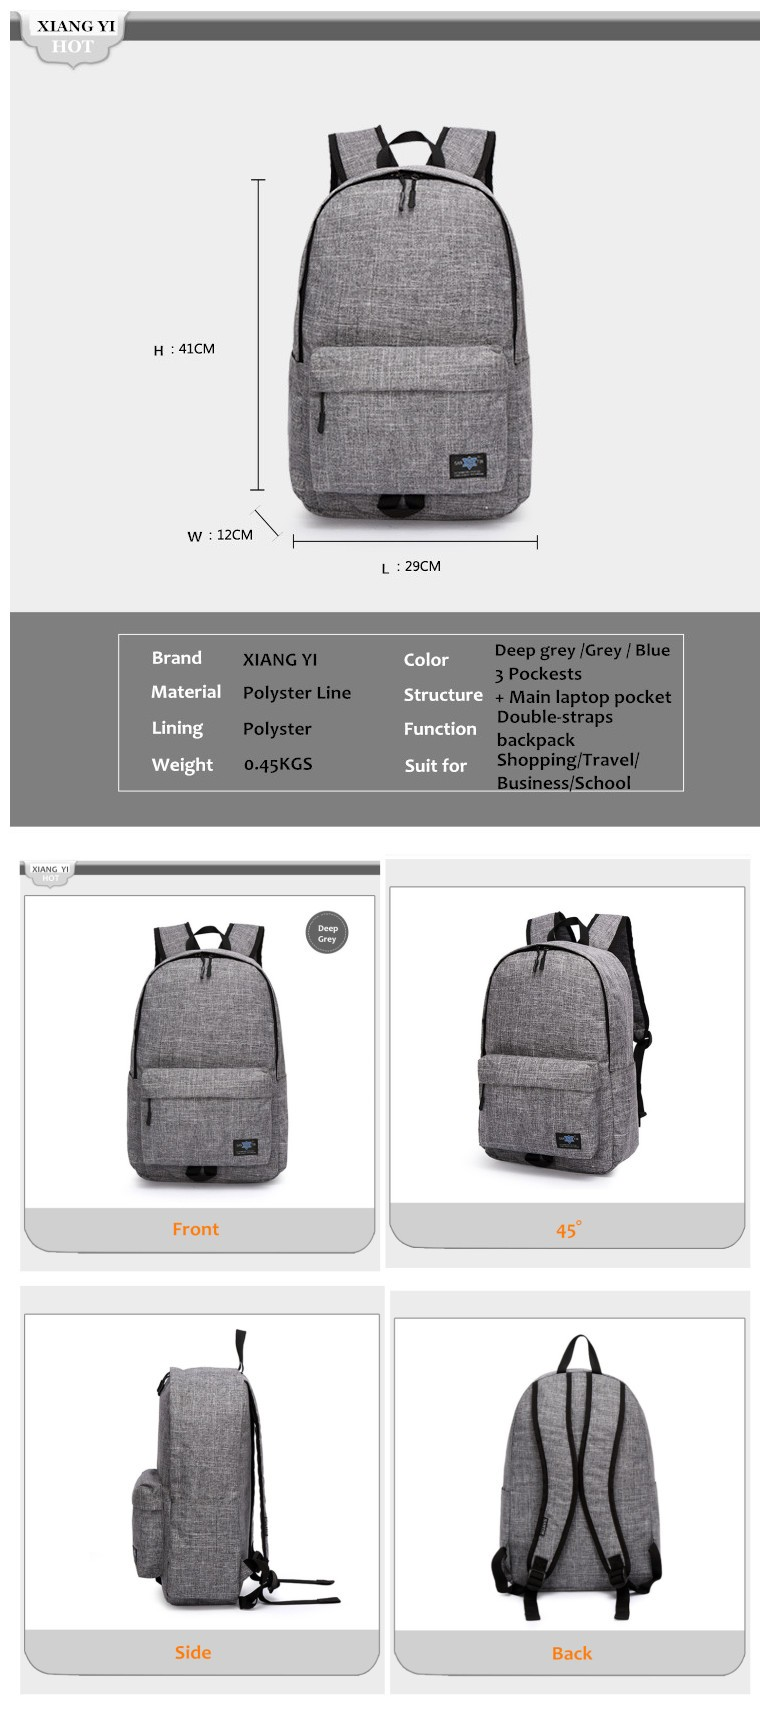 20 Inch Laptop Backpack bylVLw1U